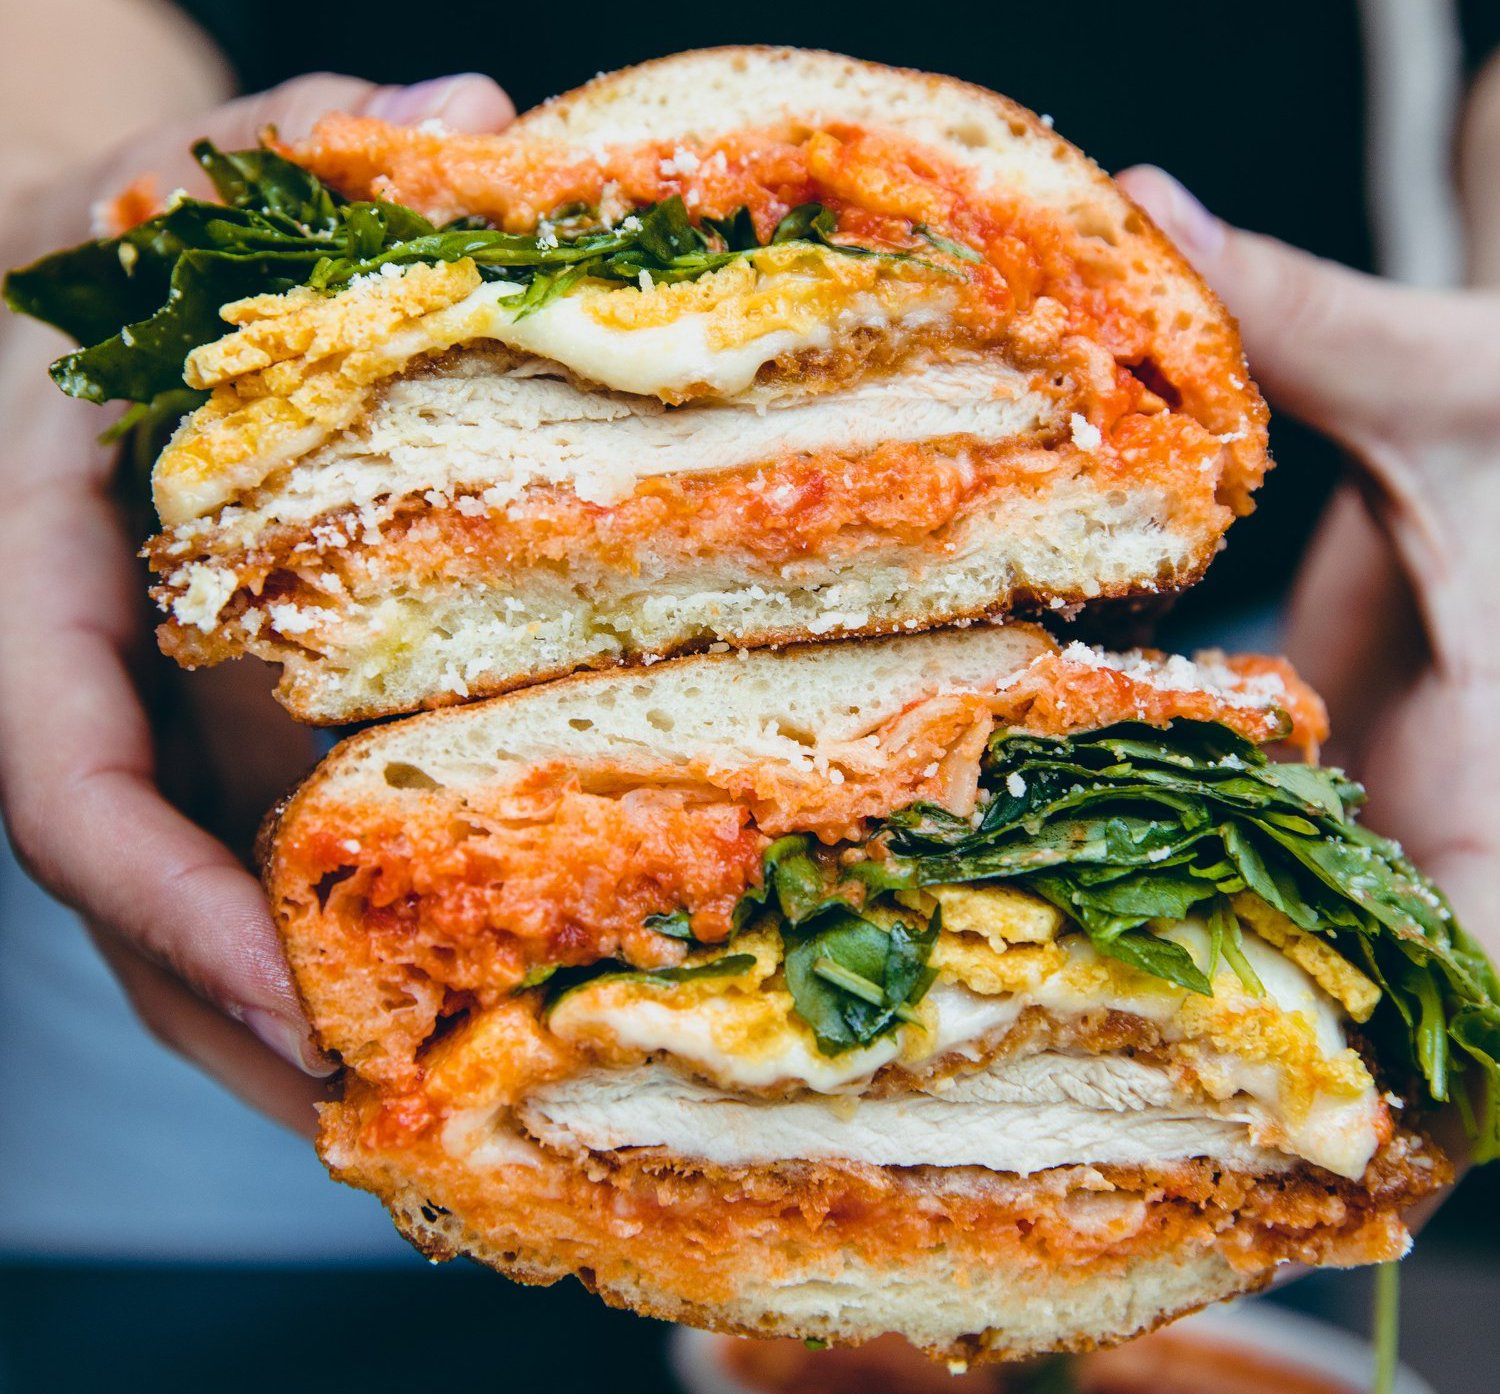 A chicken parm sandwich held open in two hands.